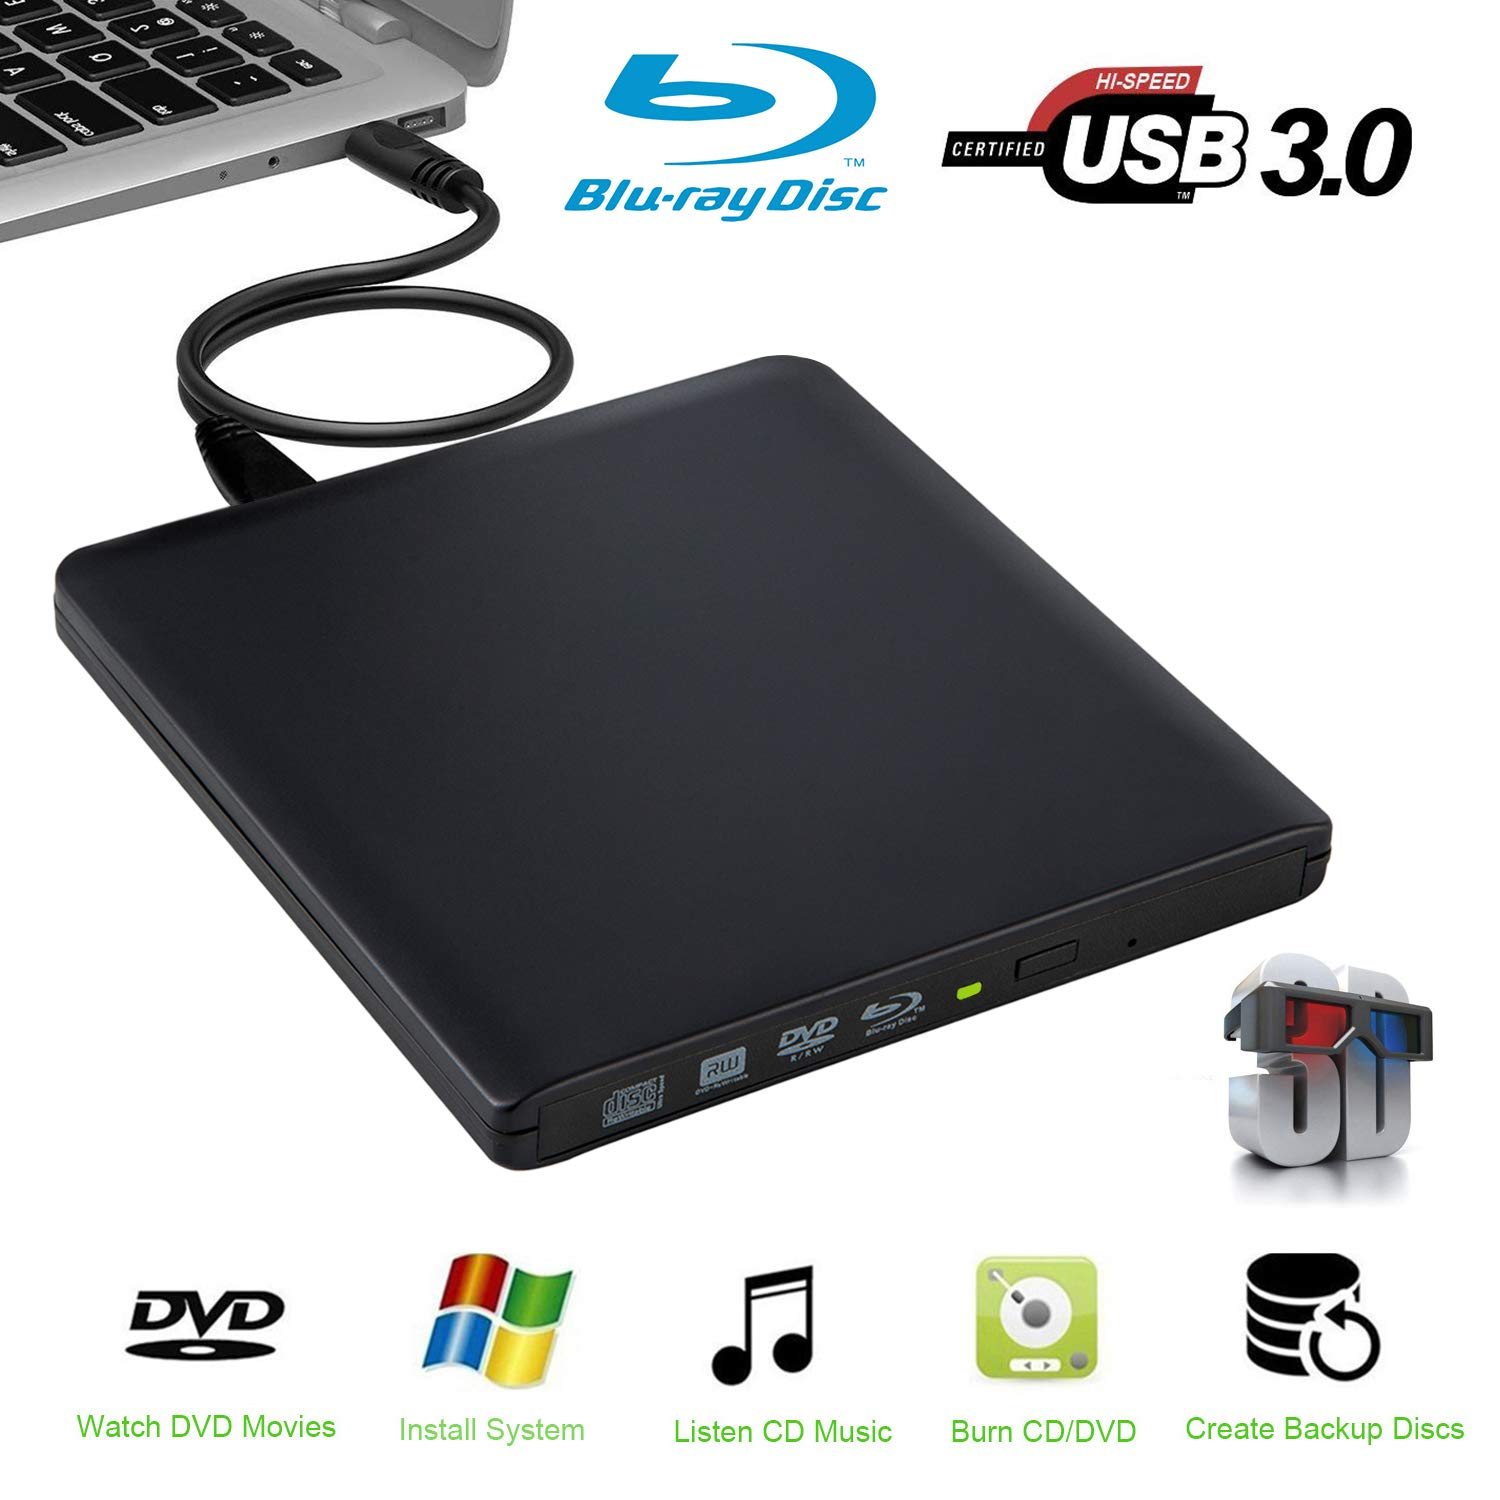 External Blu Ray Drive 3D,External Blu-ray Reader - Supports BDXL/BD/DVD/CD -6x Slim Portable USB 3.0 Blu-Ray DVD Player for Mac OS Windows7/8/10 PC Plug and Play No Need Install Driver